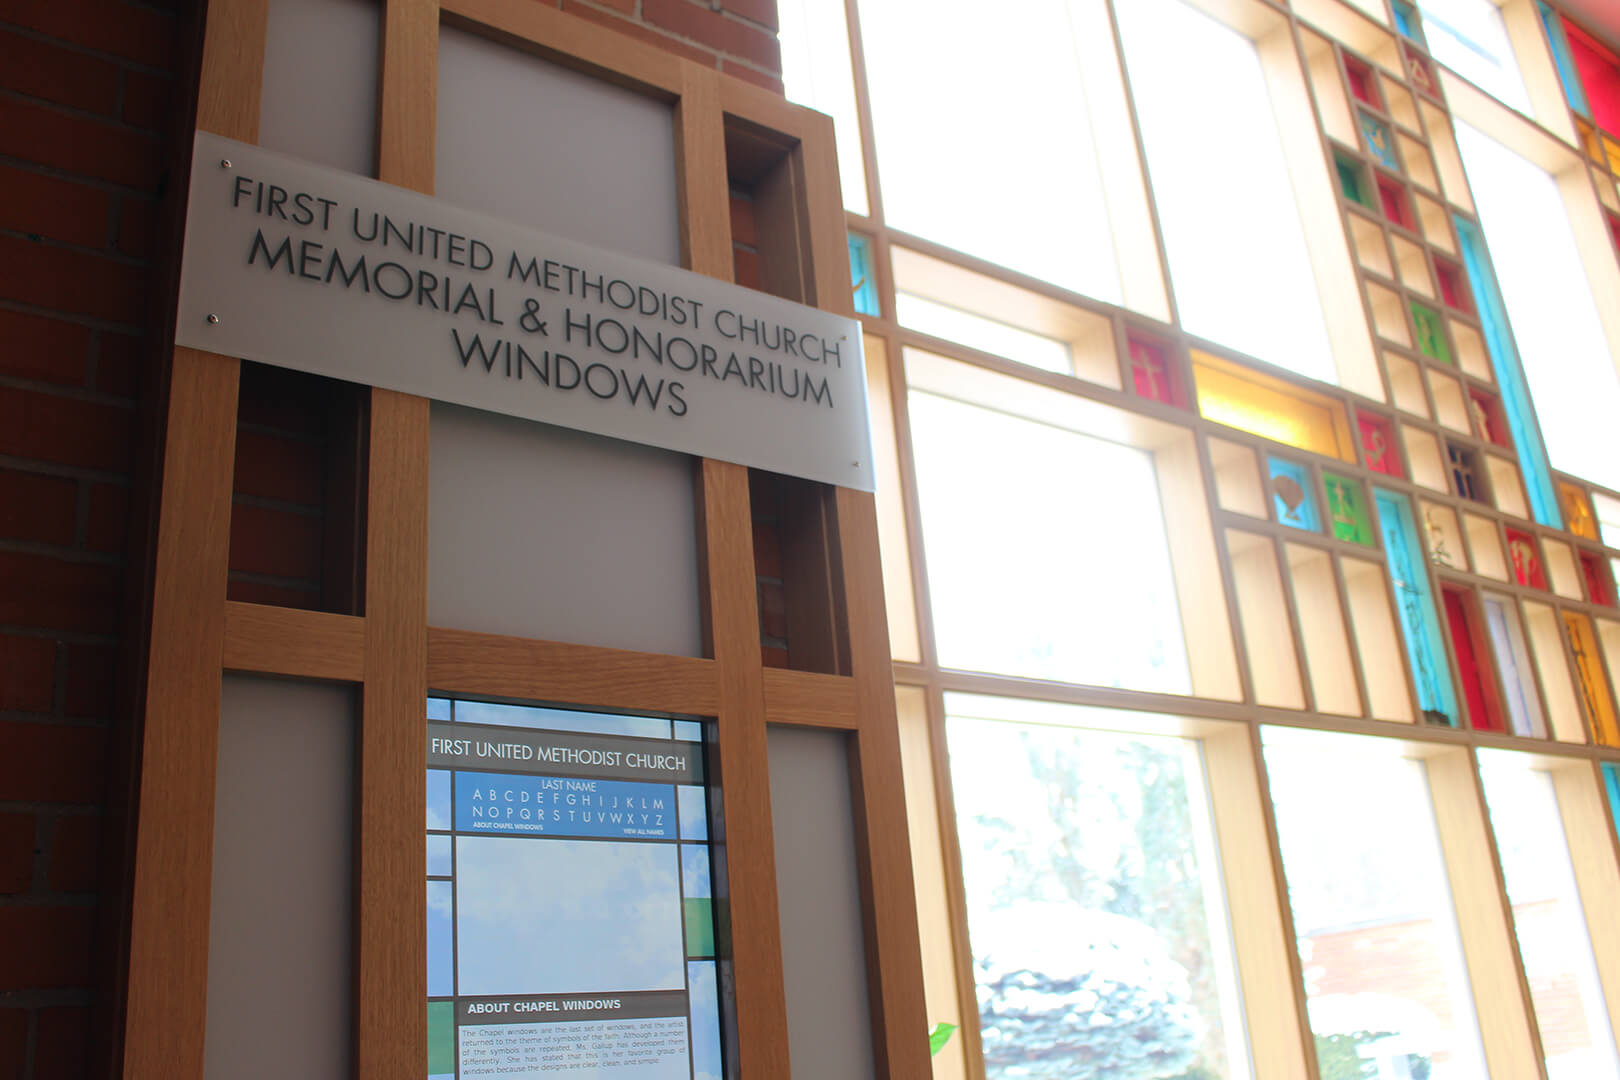 One touchscreen kiosk, with stained glass windows in the background